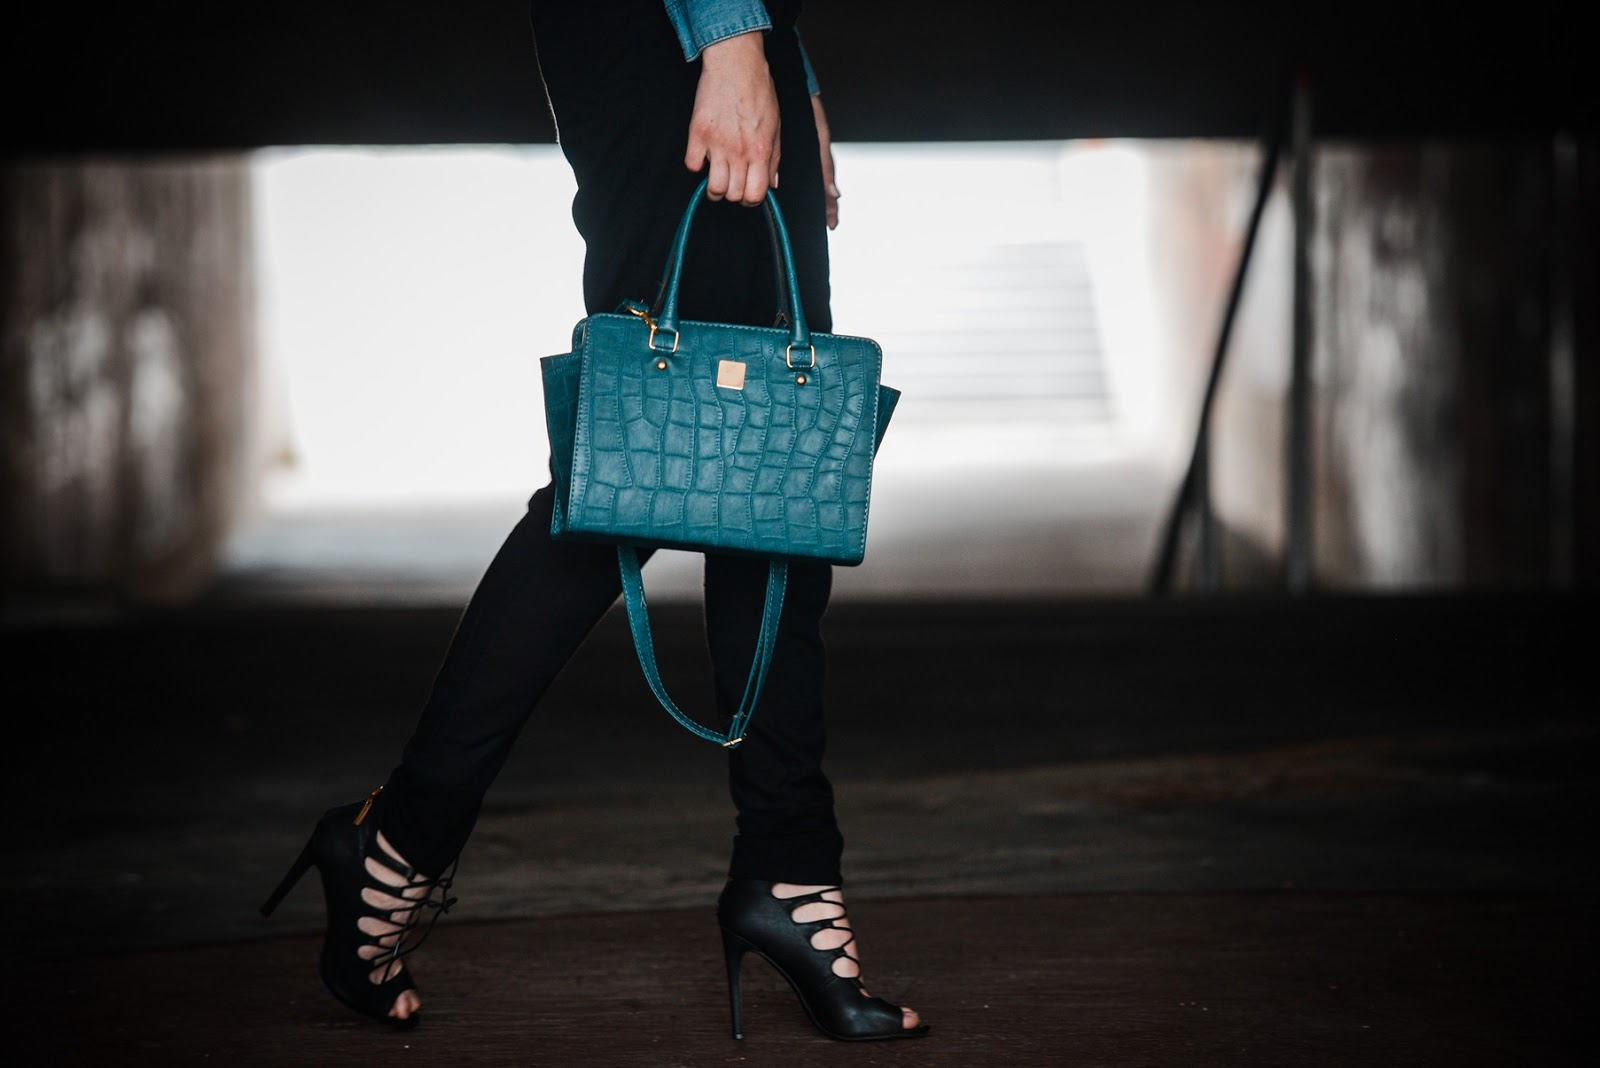 selma bag michael kors lookalike, trapeze turquoise bag, denim shirt, asos black peg leg trousers, style blogger, fashion blog, lace up heels outfit